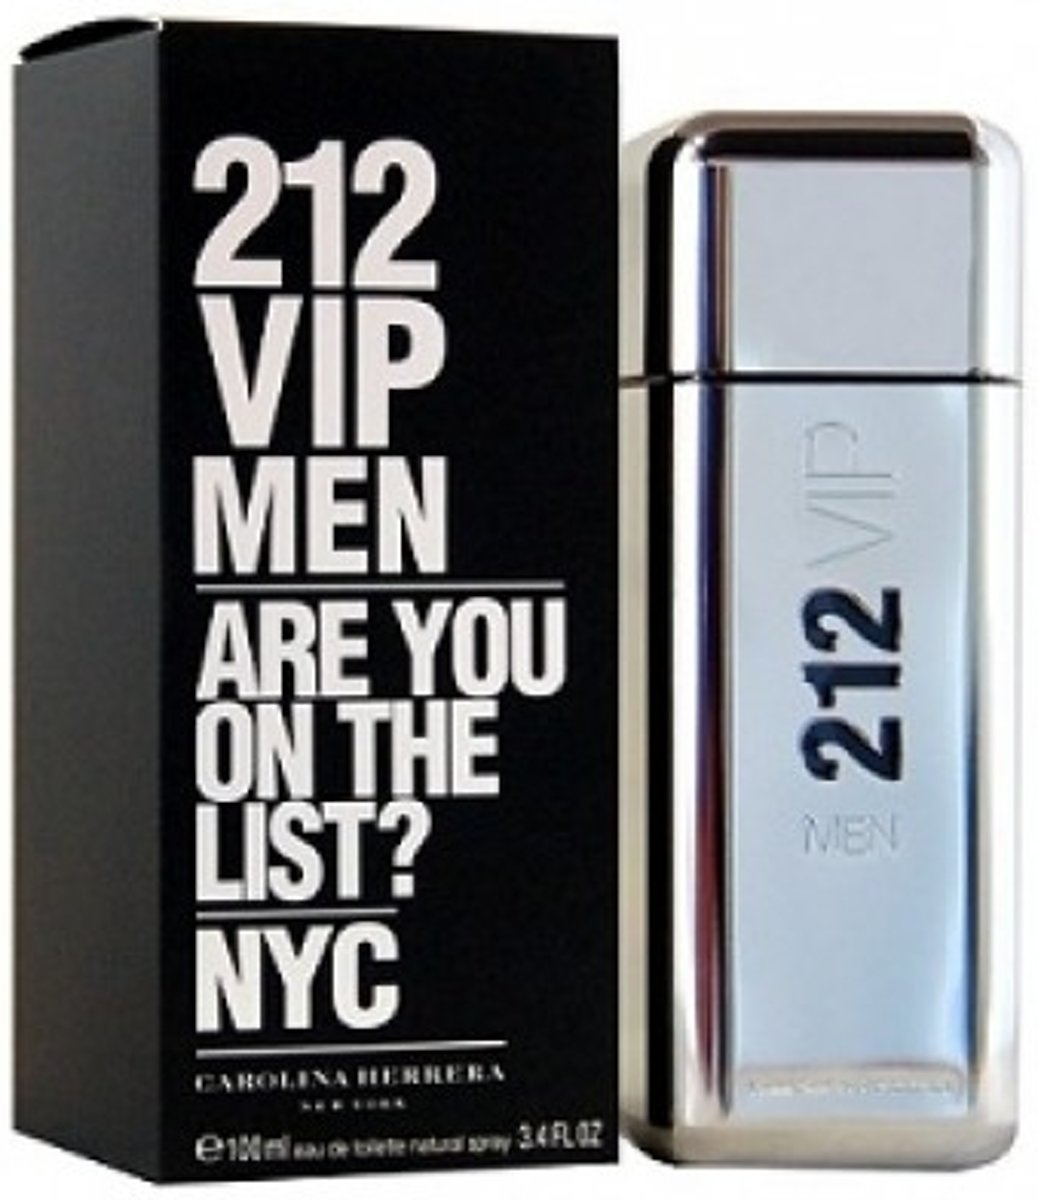 Carolina Herrera 212 VIP Men - 200 ml - Eau de toilette